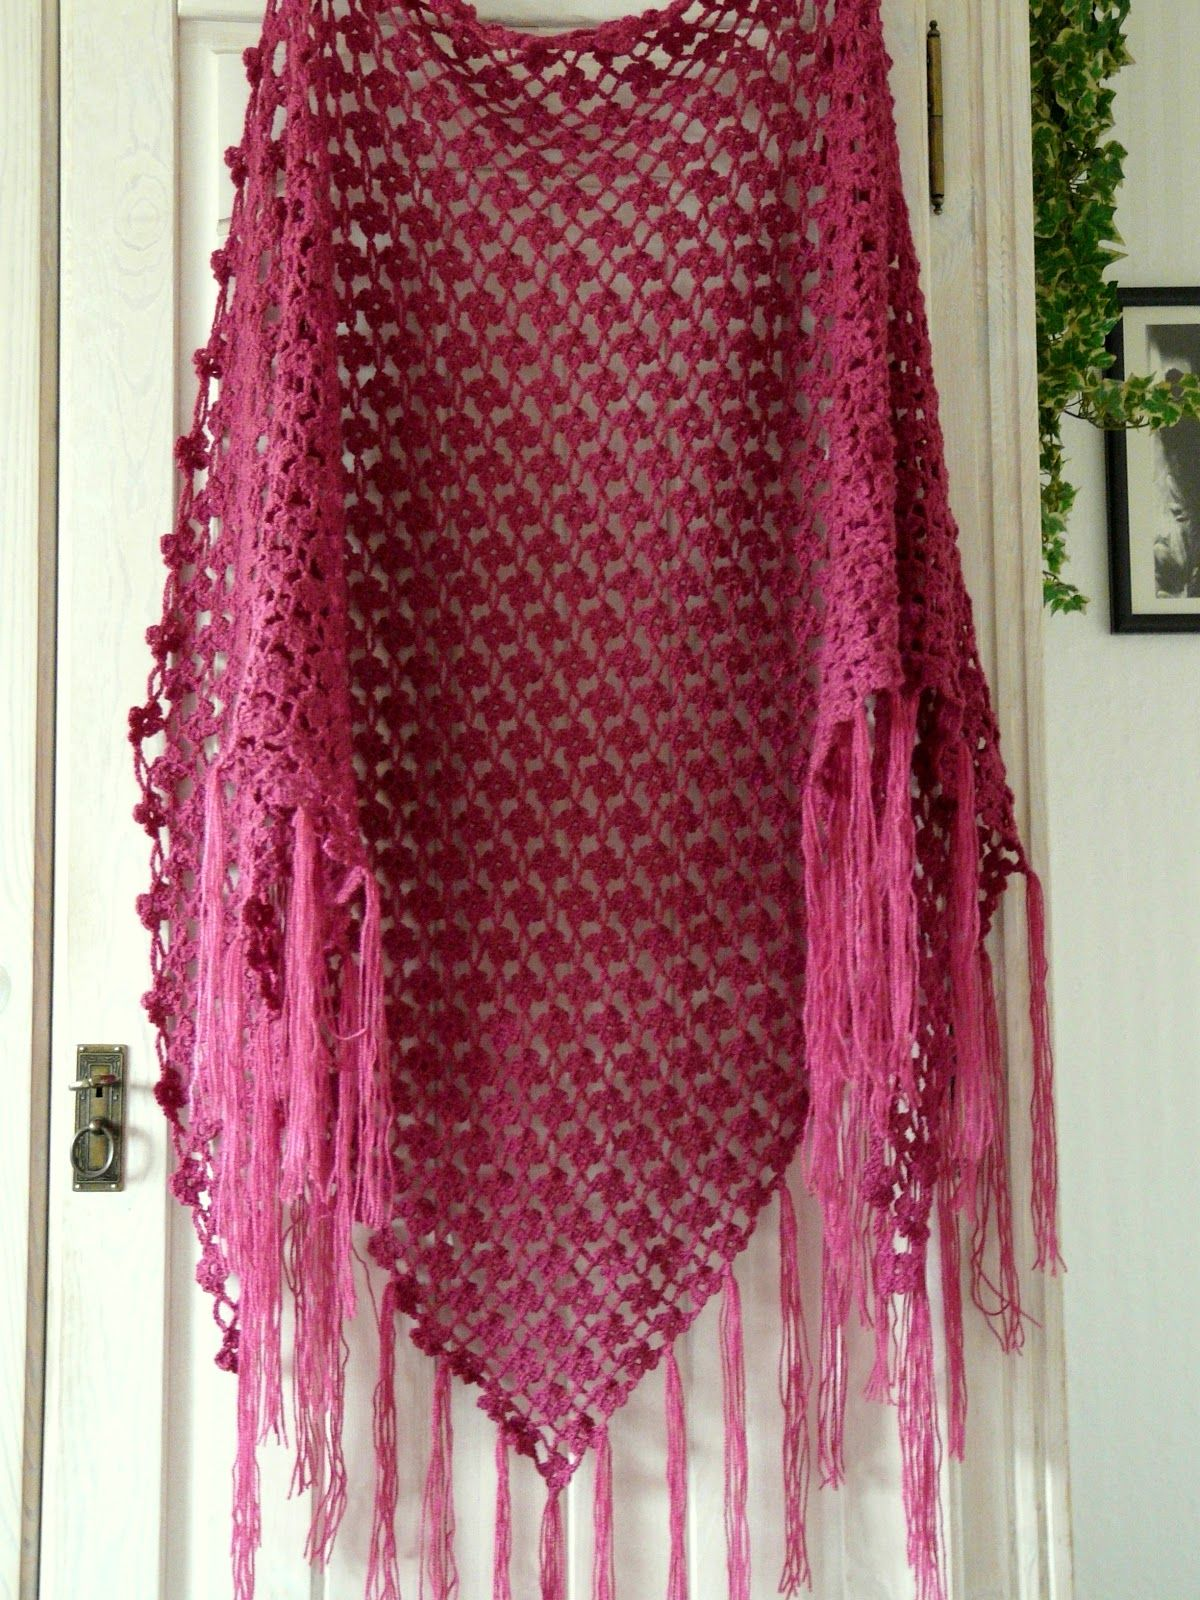 Flower-Lattice-Shawl, my work, pattern by Debi Dearest | Assesoires ...